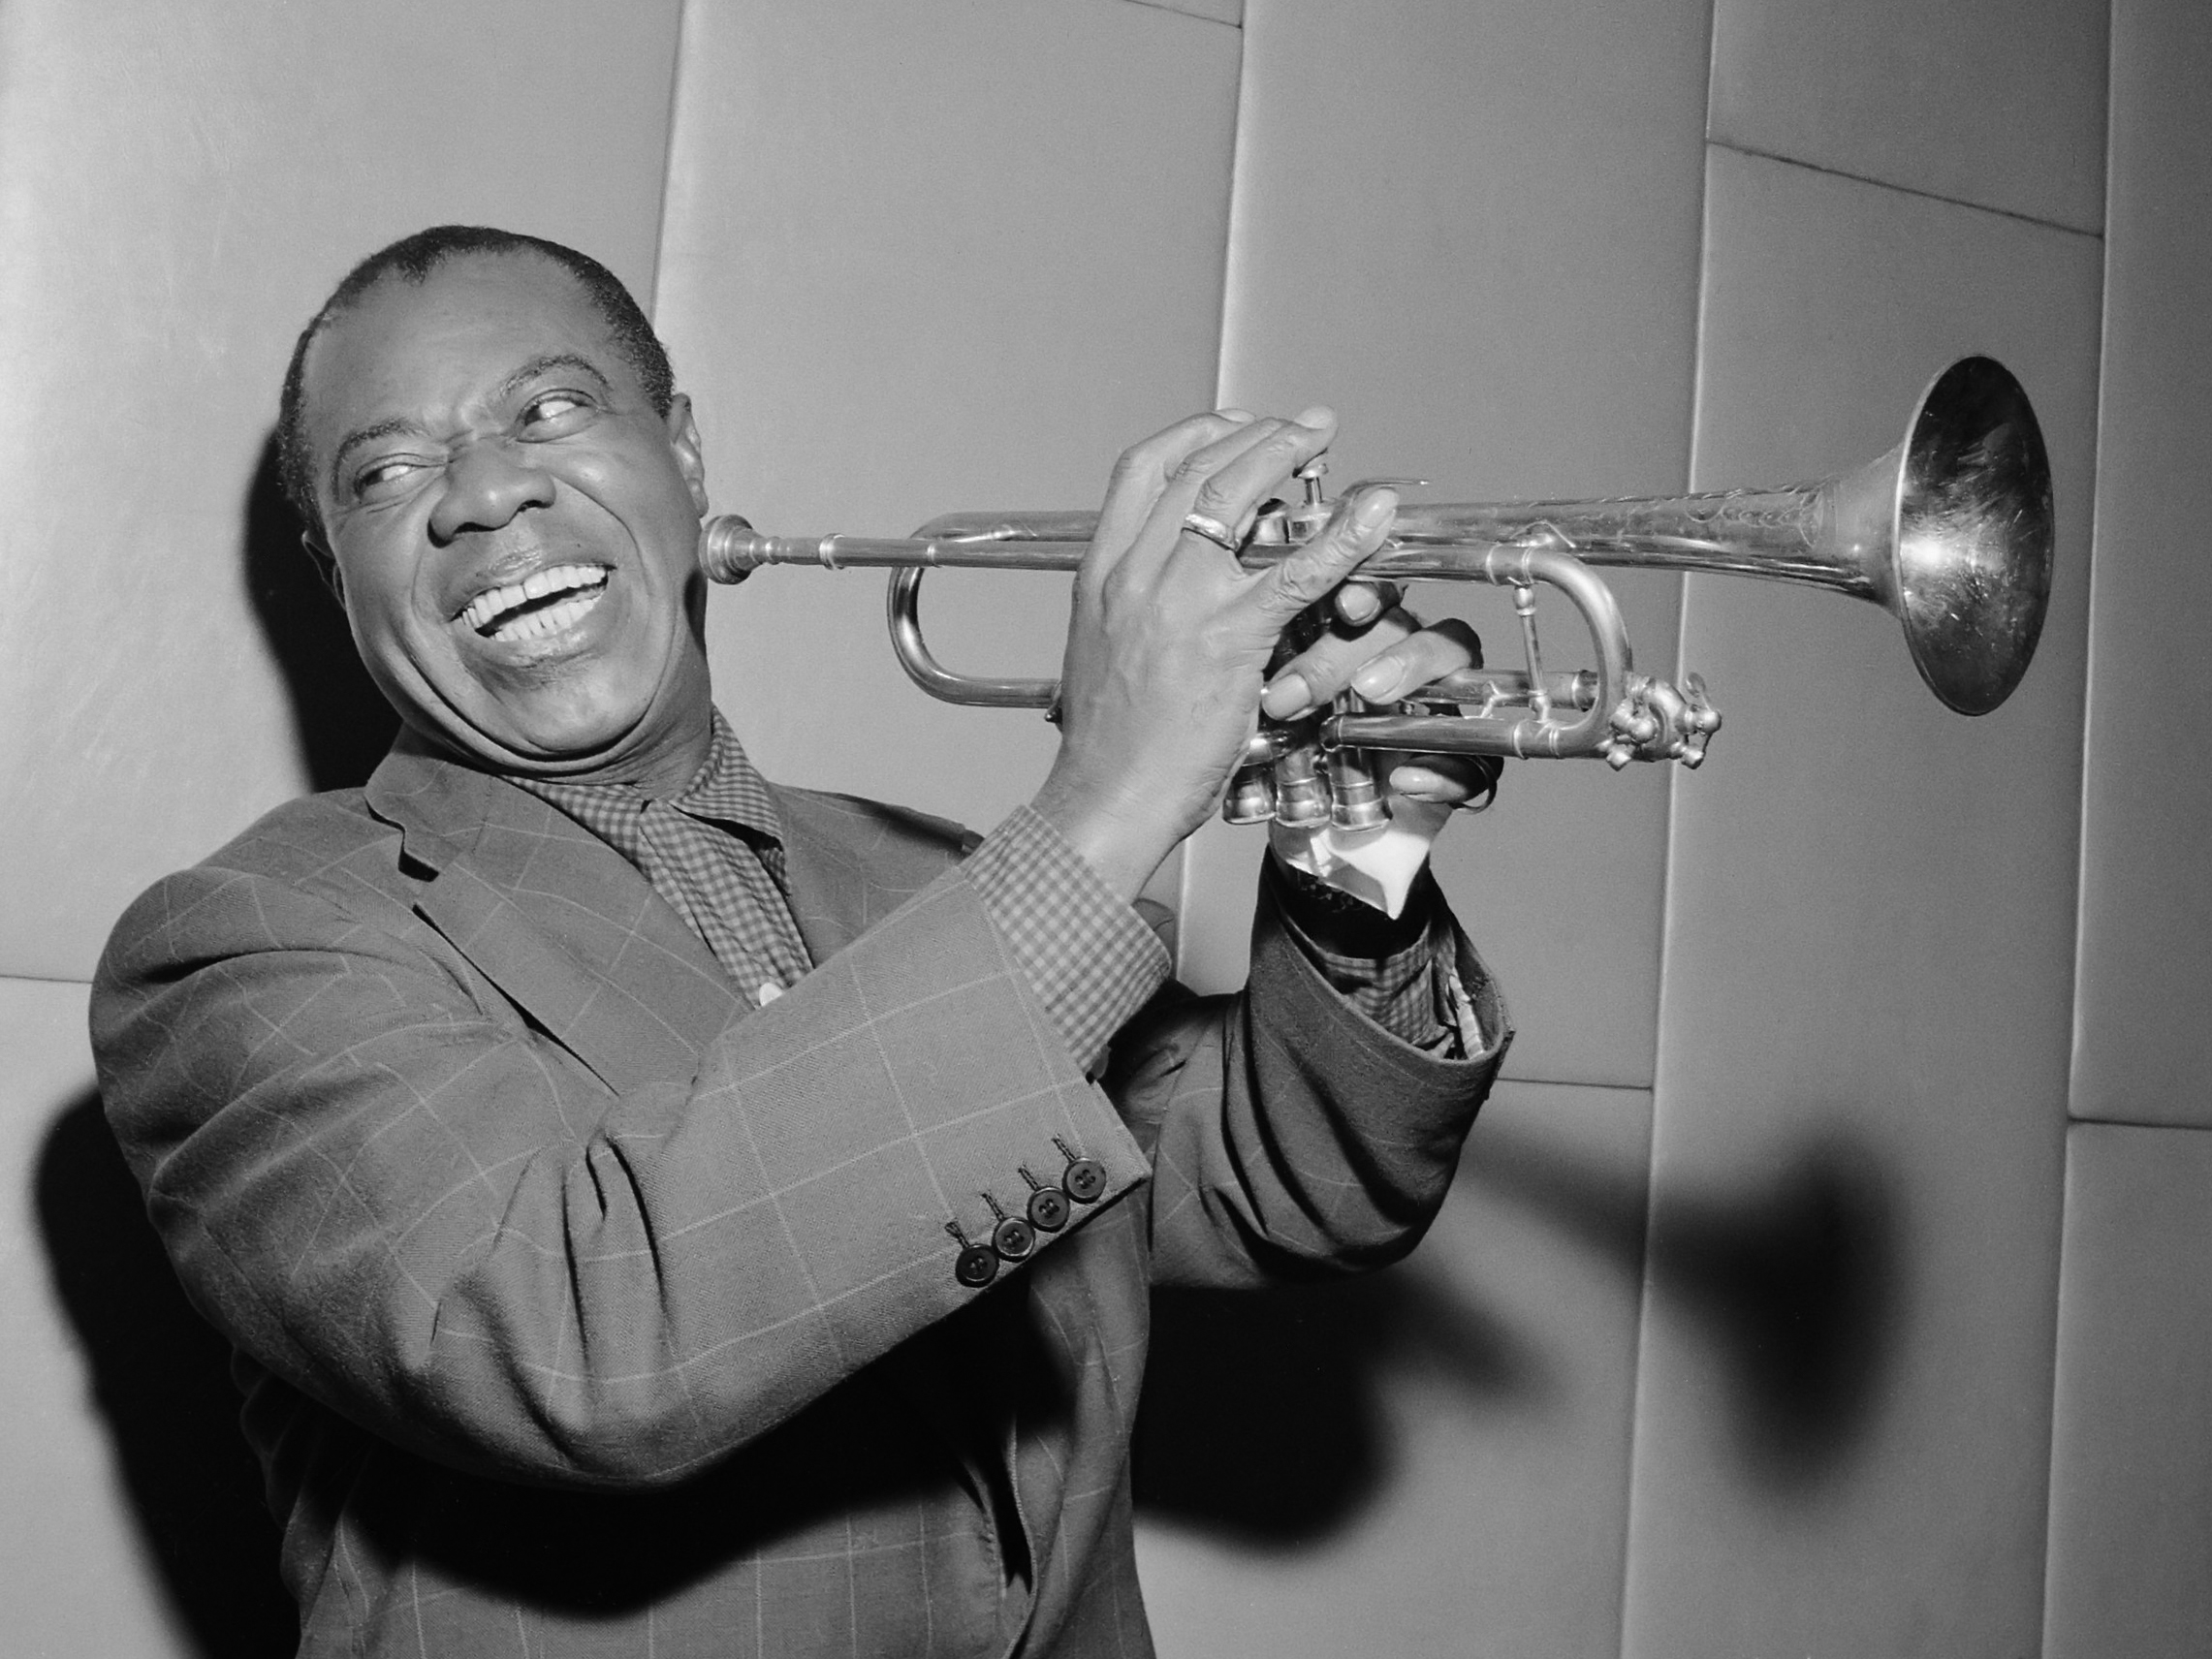 Download wallpapers 2282x1712 louie armstrong, jazz, pipe, bw hd